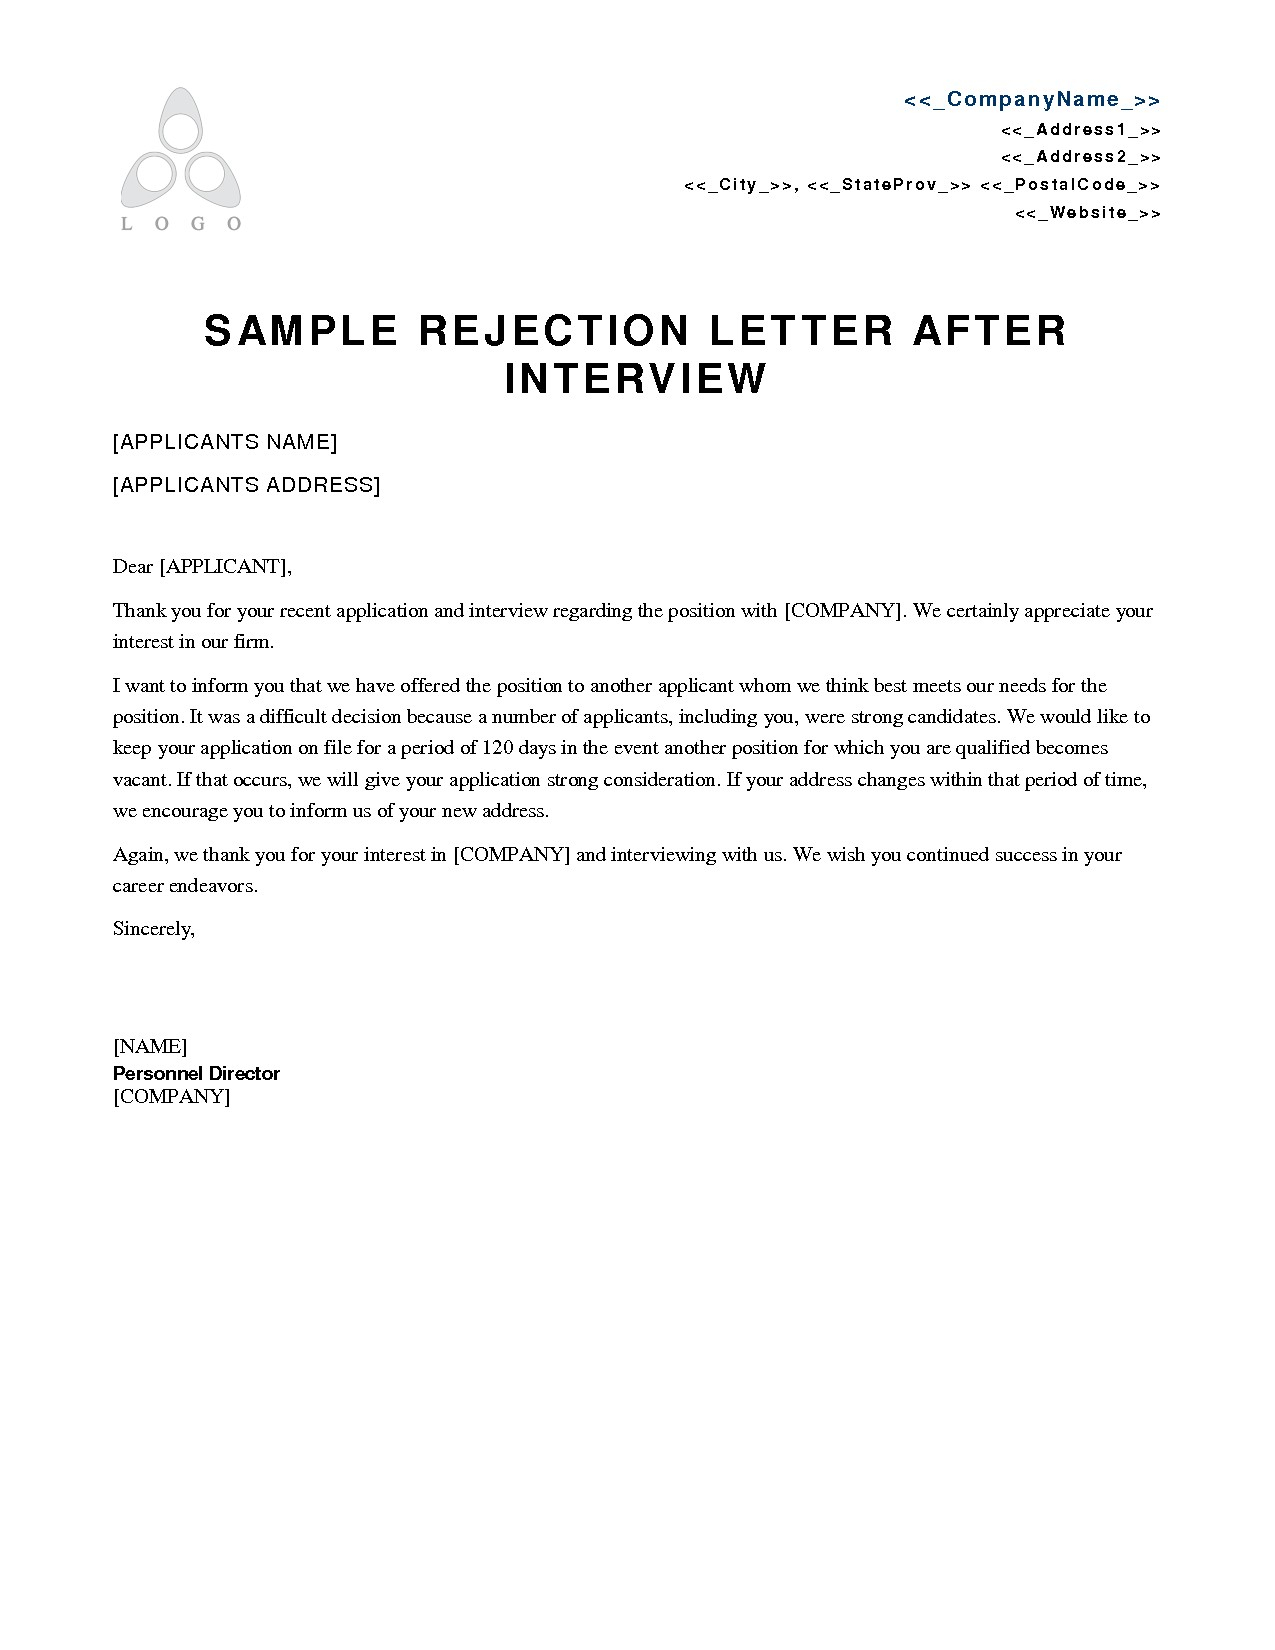 job interview rejection letter